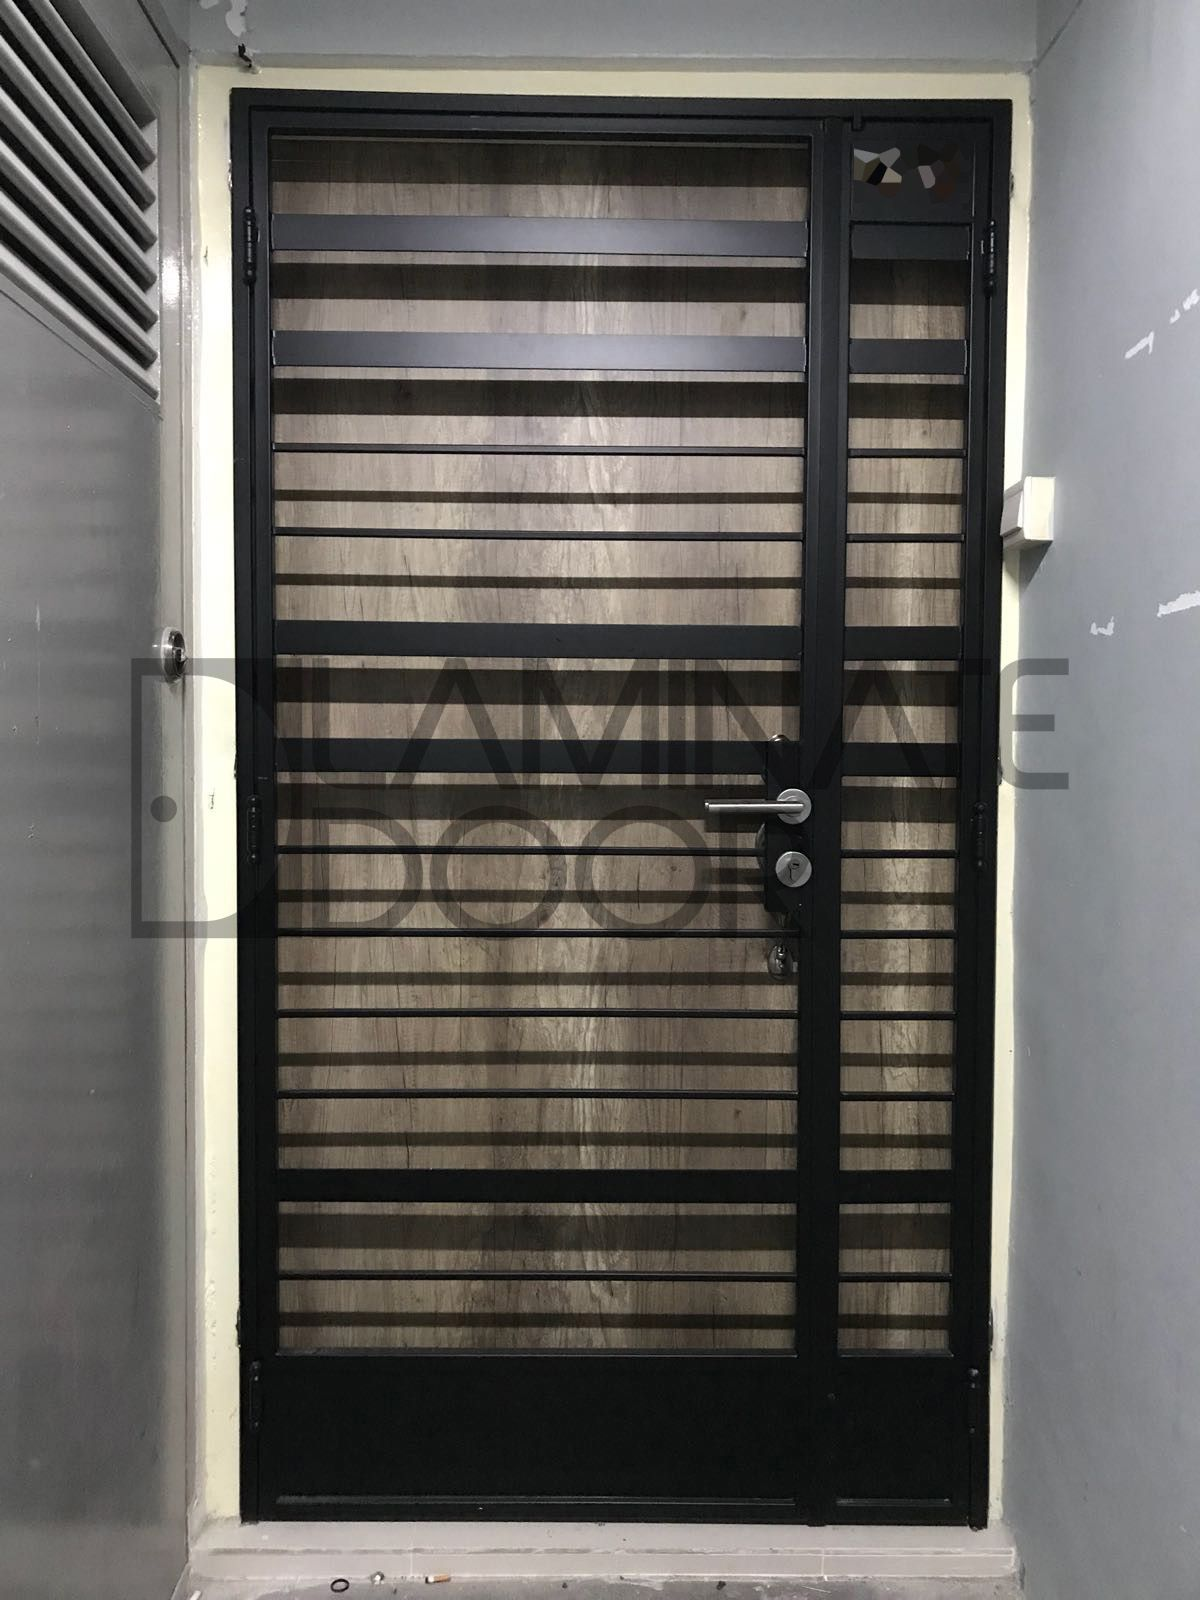 Latest Design Of Hdb Bto Mild Steel Gate 3x7ft Gate At 680 And 4x7ft Gate At 780 Call 85220015 Ask For More Des Laminate Doors Door Gate Design Gate Design